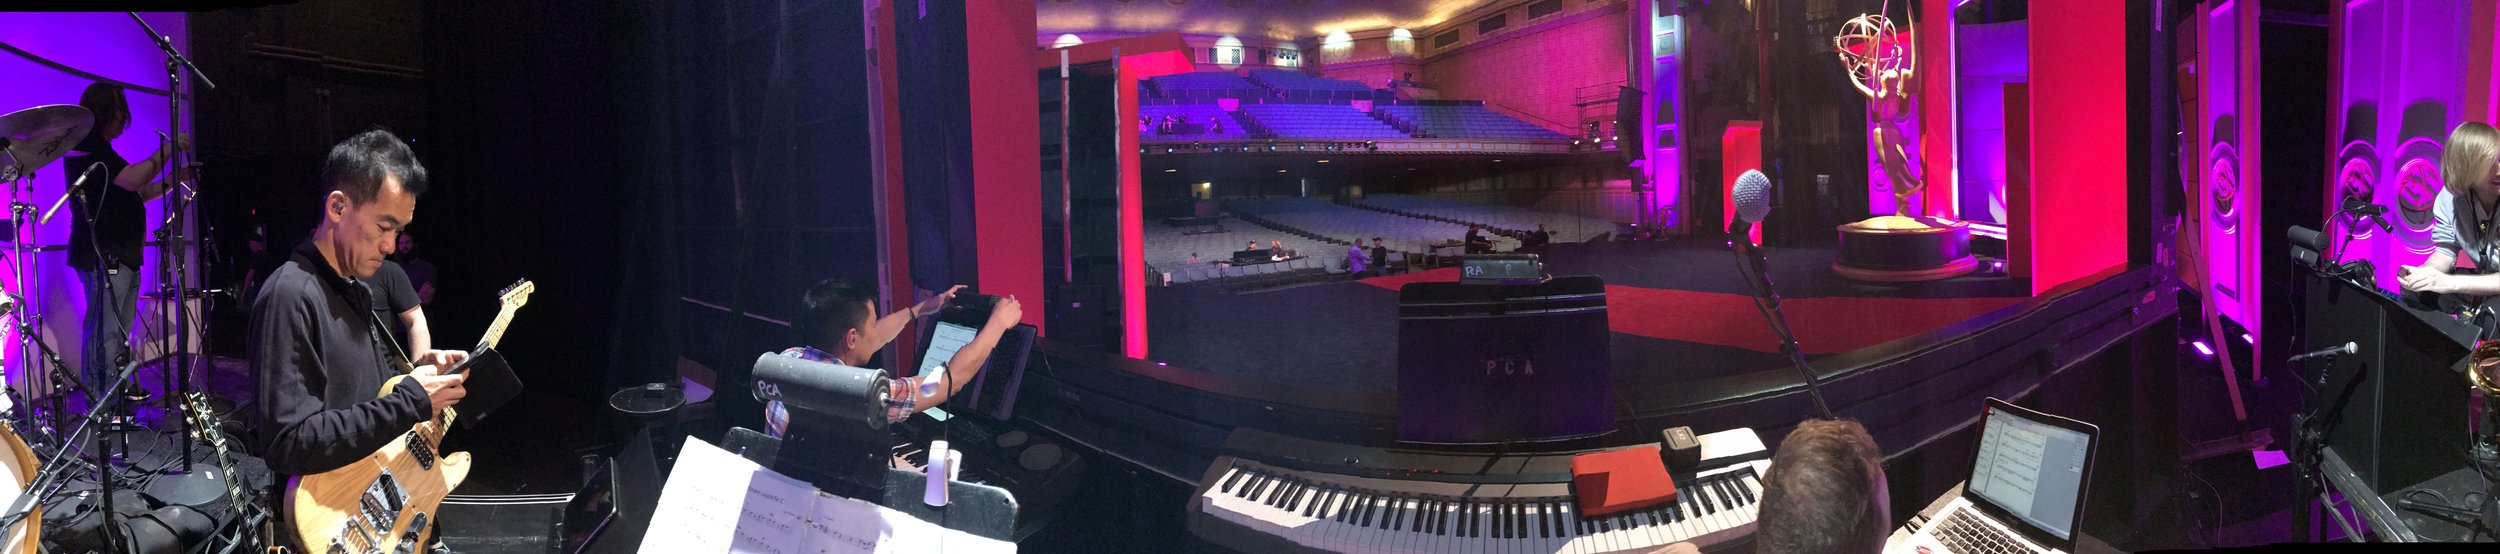 The view from my angle on the stage